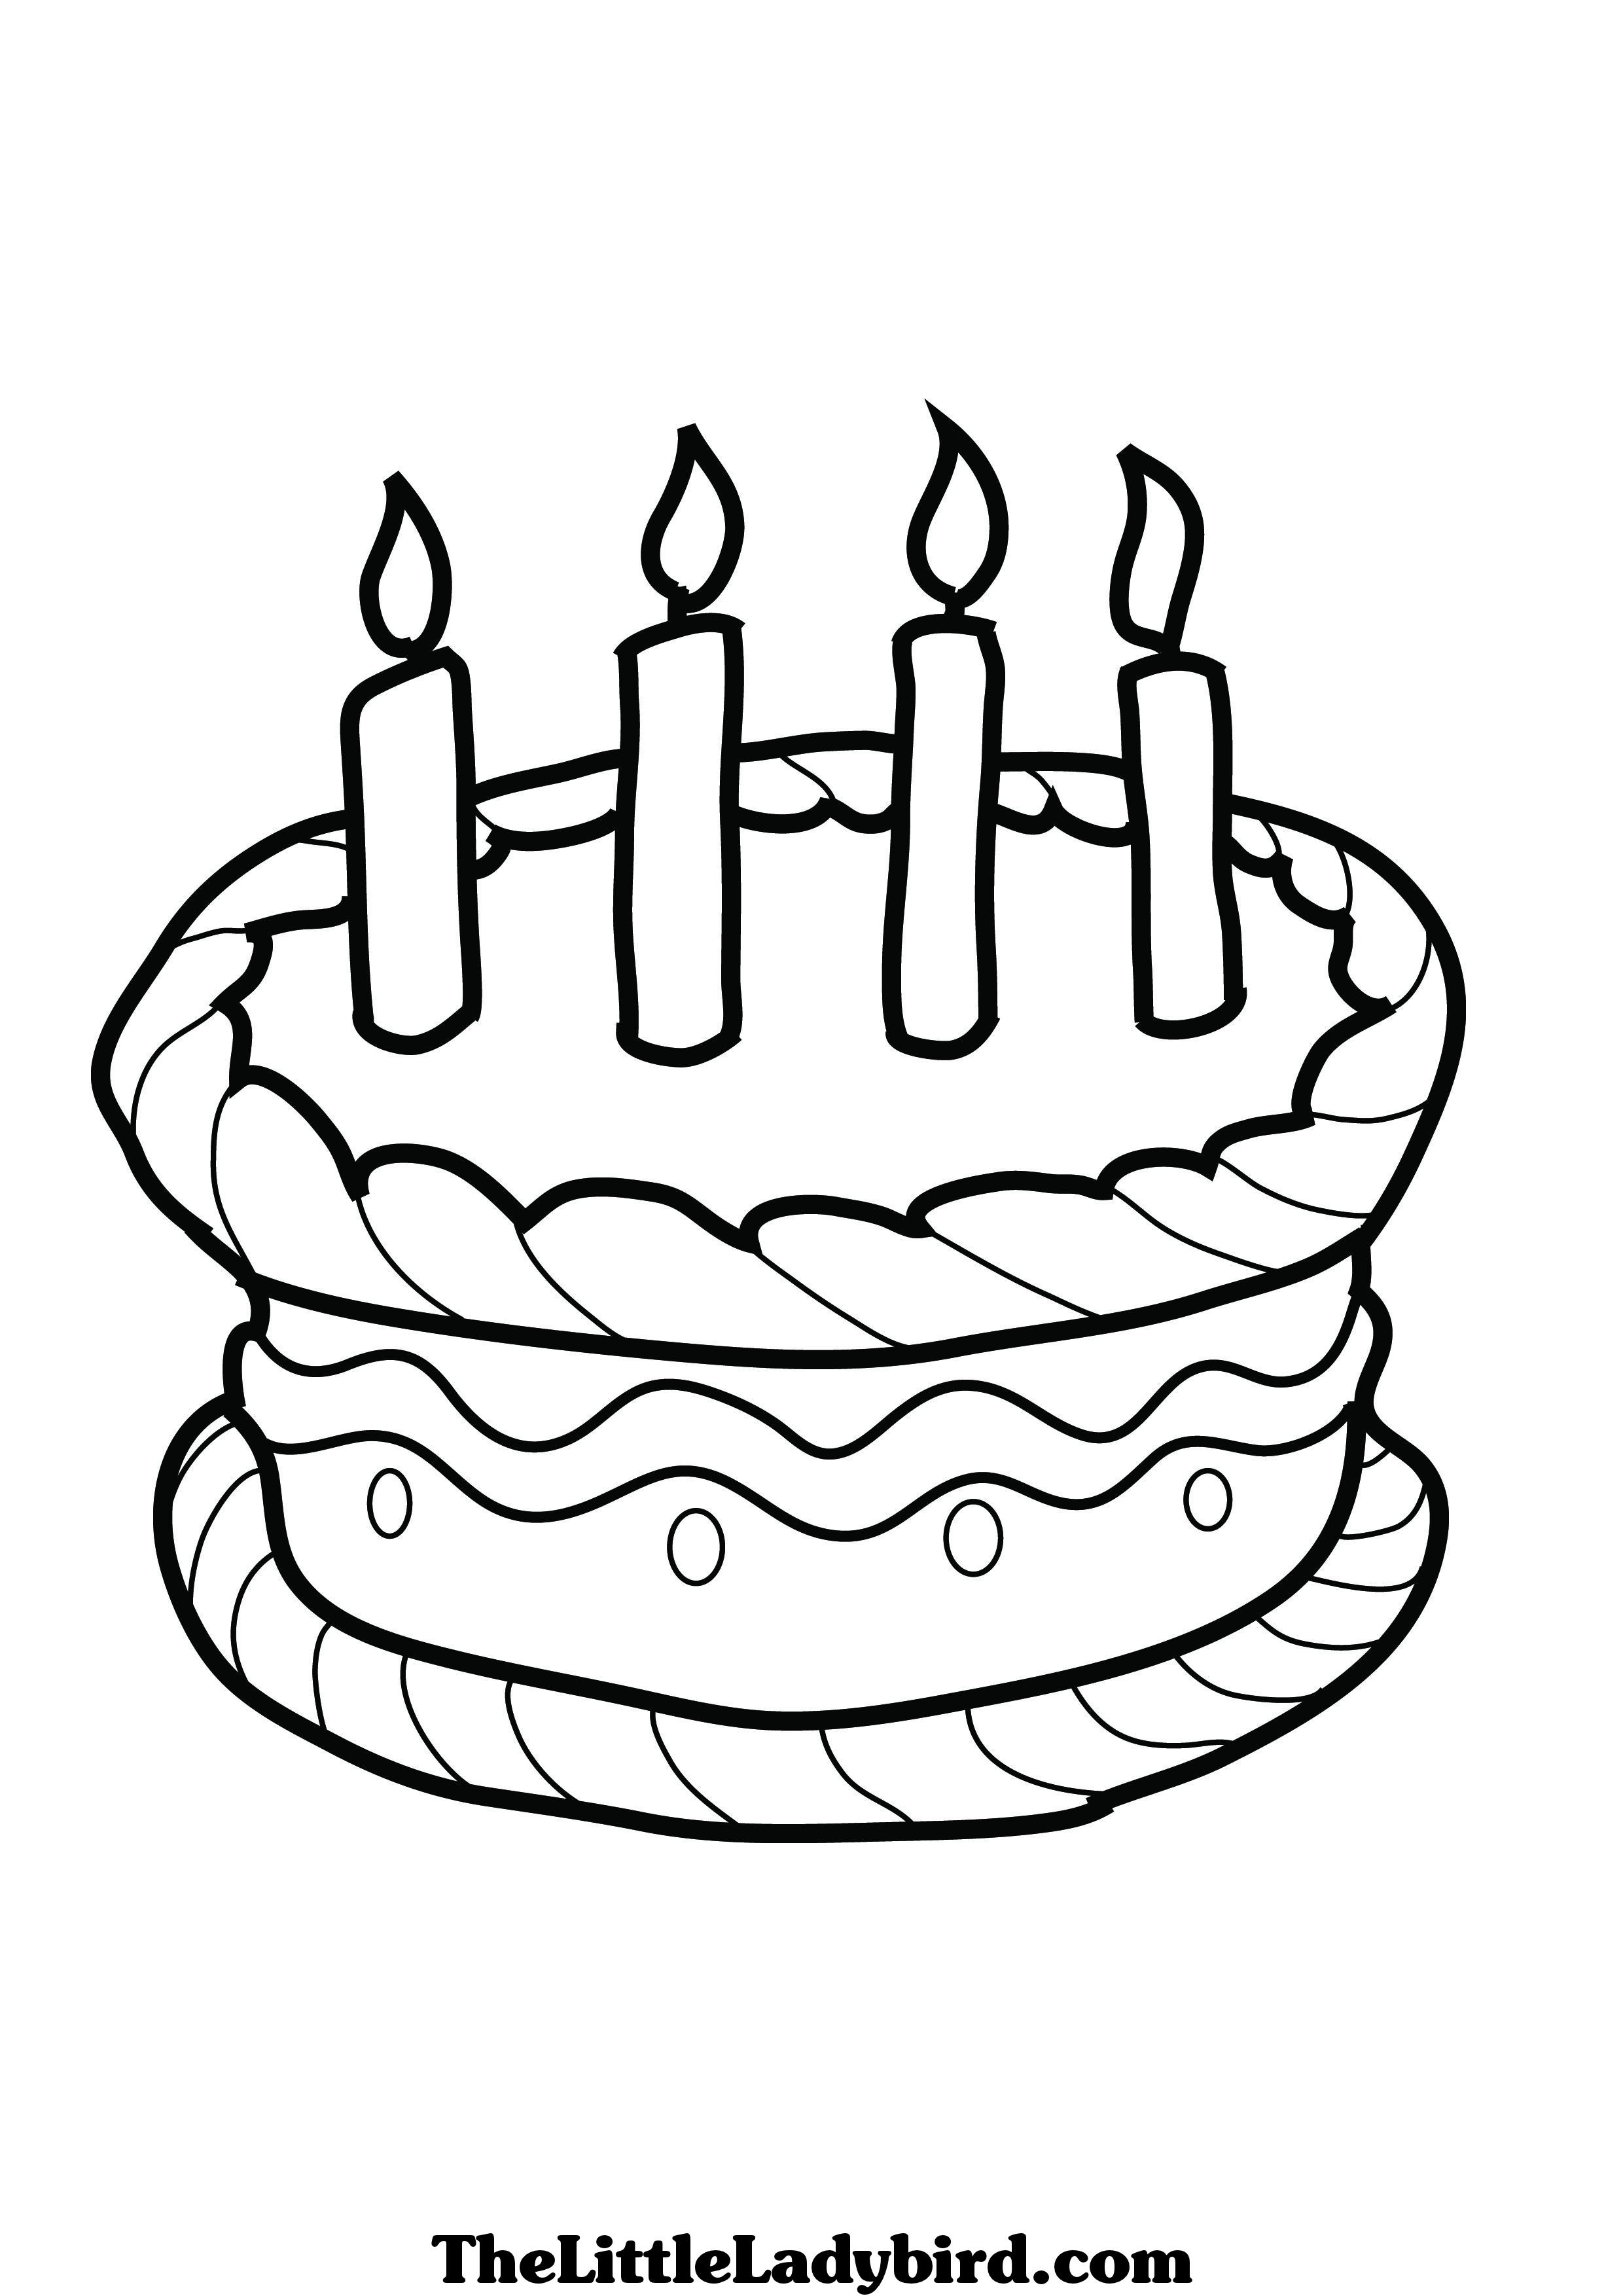 birthday cake coloring sheet ; unnamed-file-619